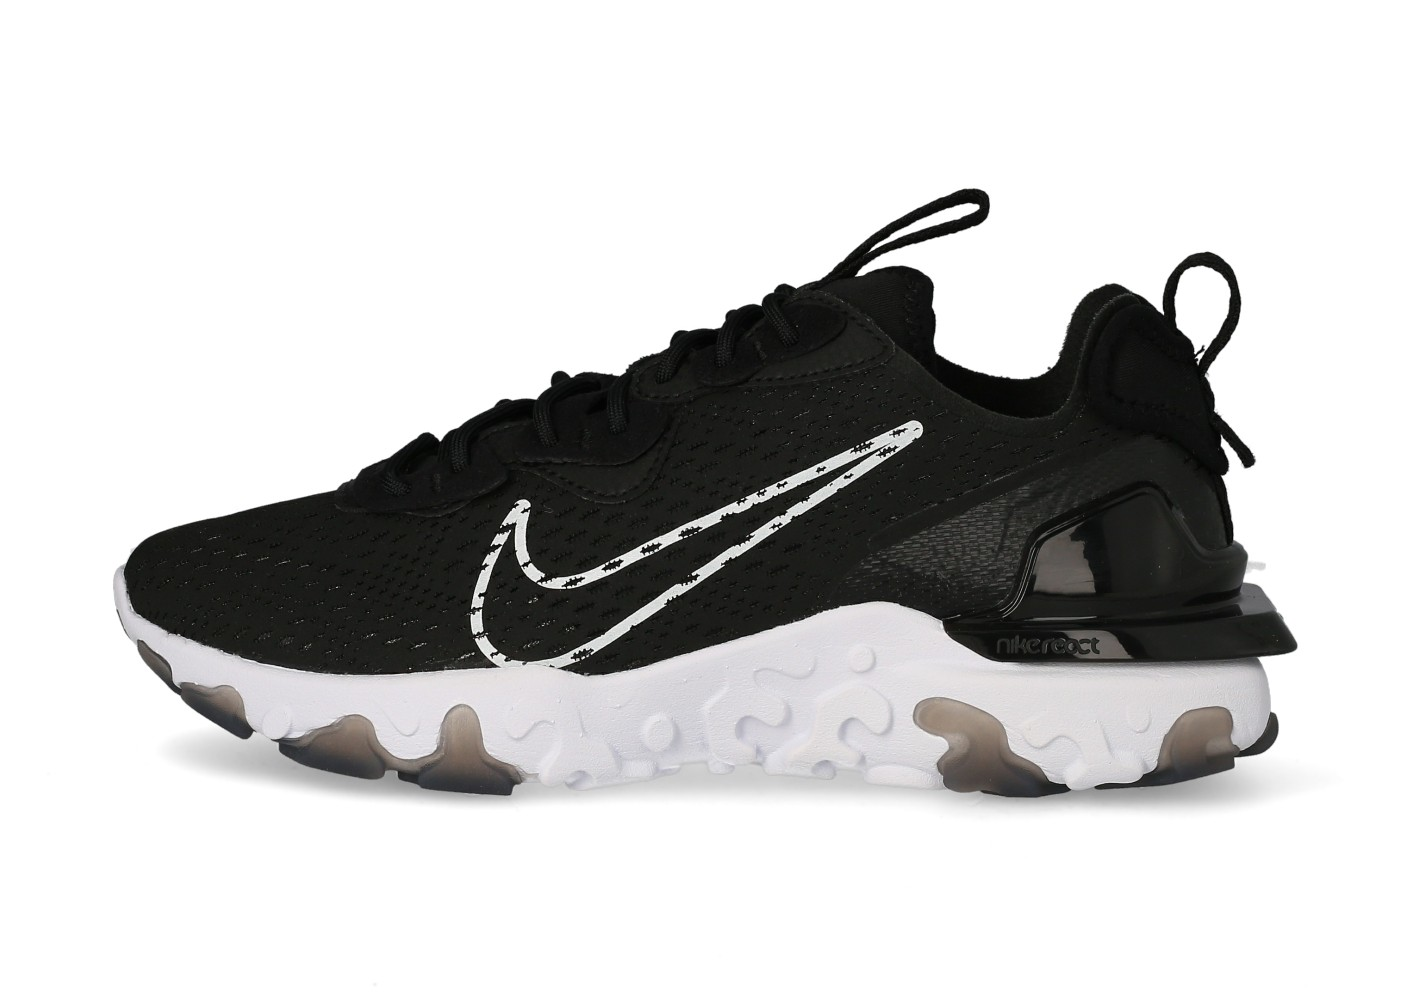 Nike React Vision Homme noire et blanche - Chaussures Baskets ...